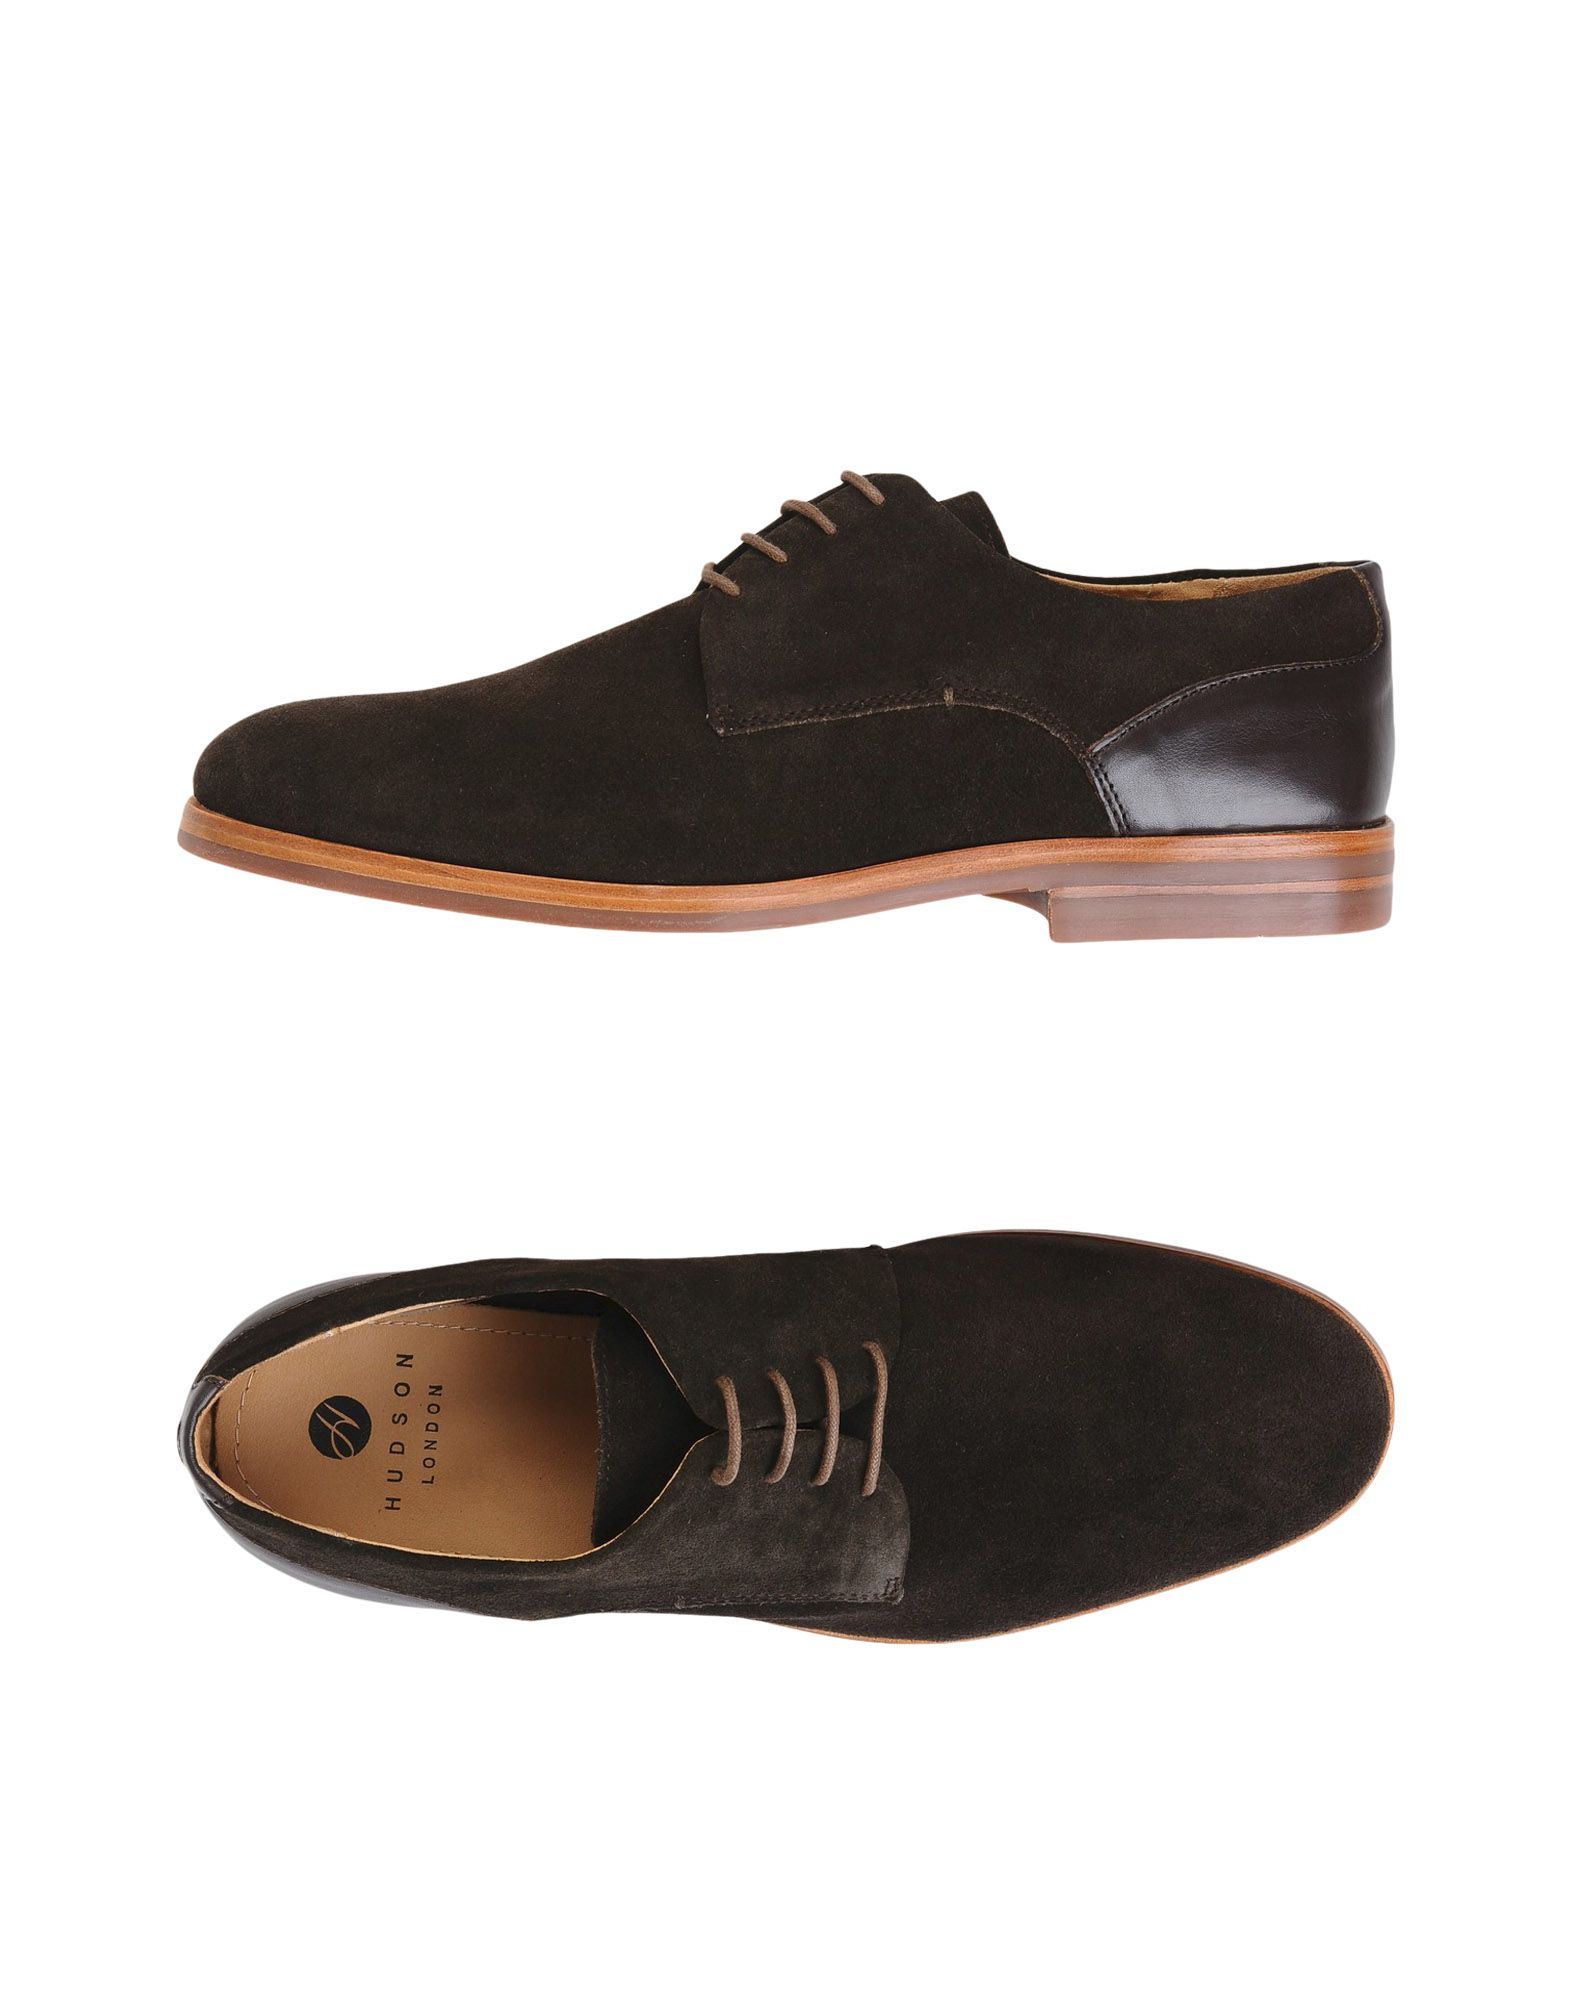 H BY HUDSON Laced Shoes in Dark Brown